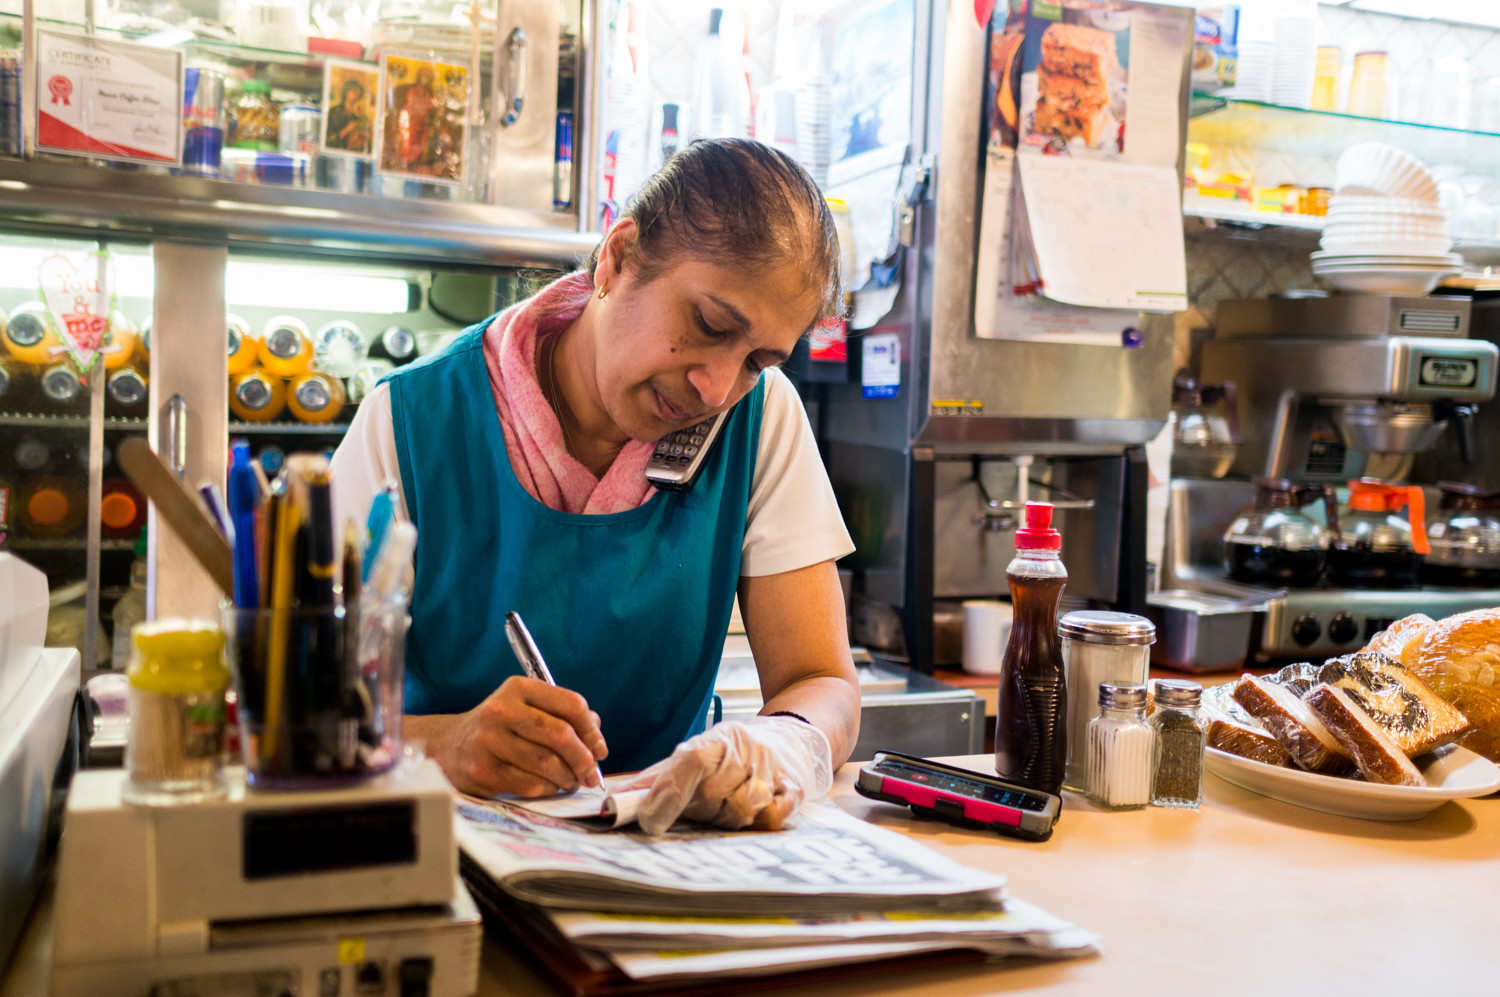 Ruth Tzanetatos, the owner of Noni's Coffee Shop on Riverdale Avenue, takes a customer's order over the phone. Her cook, Pedro Torres, is recovering at home from an injury, increasing the strain on Noni's remaining staff.